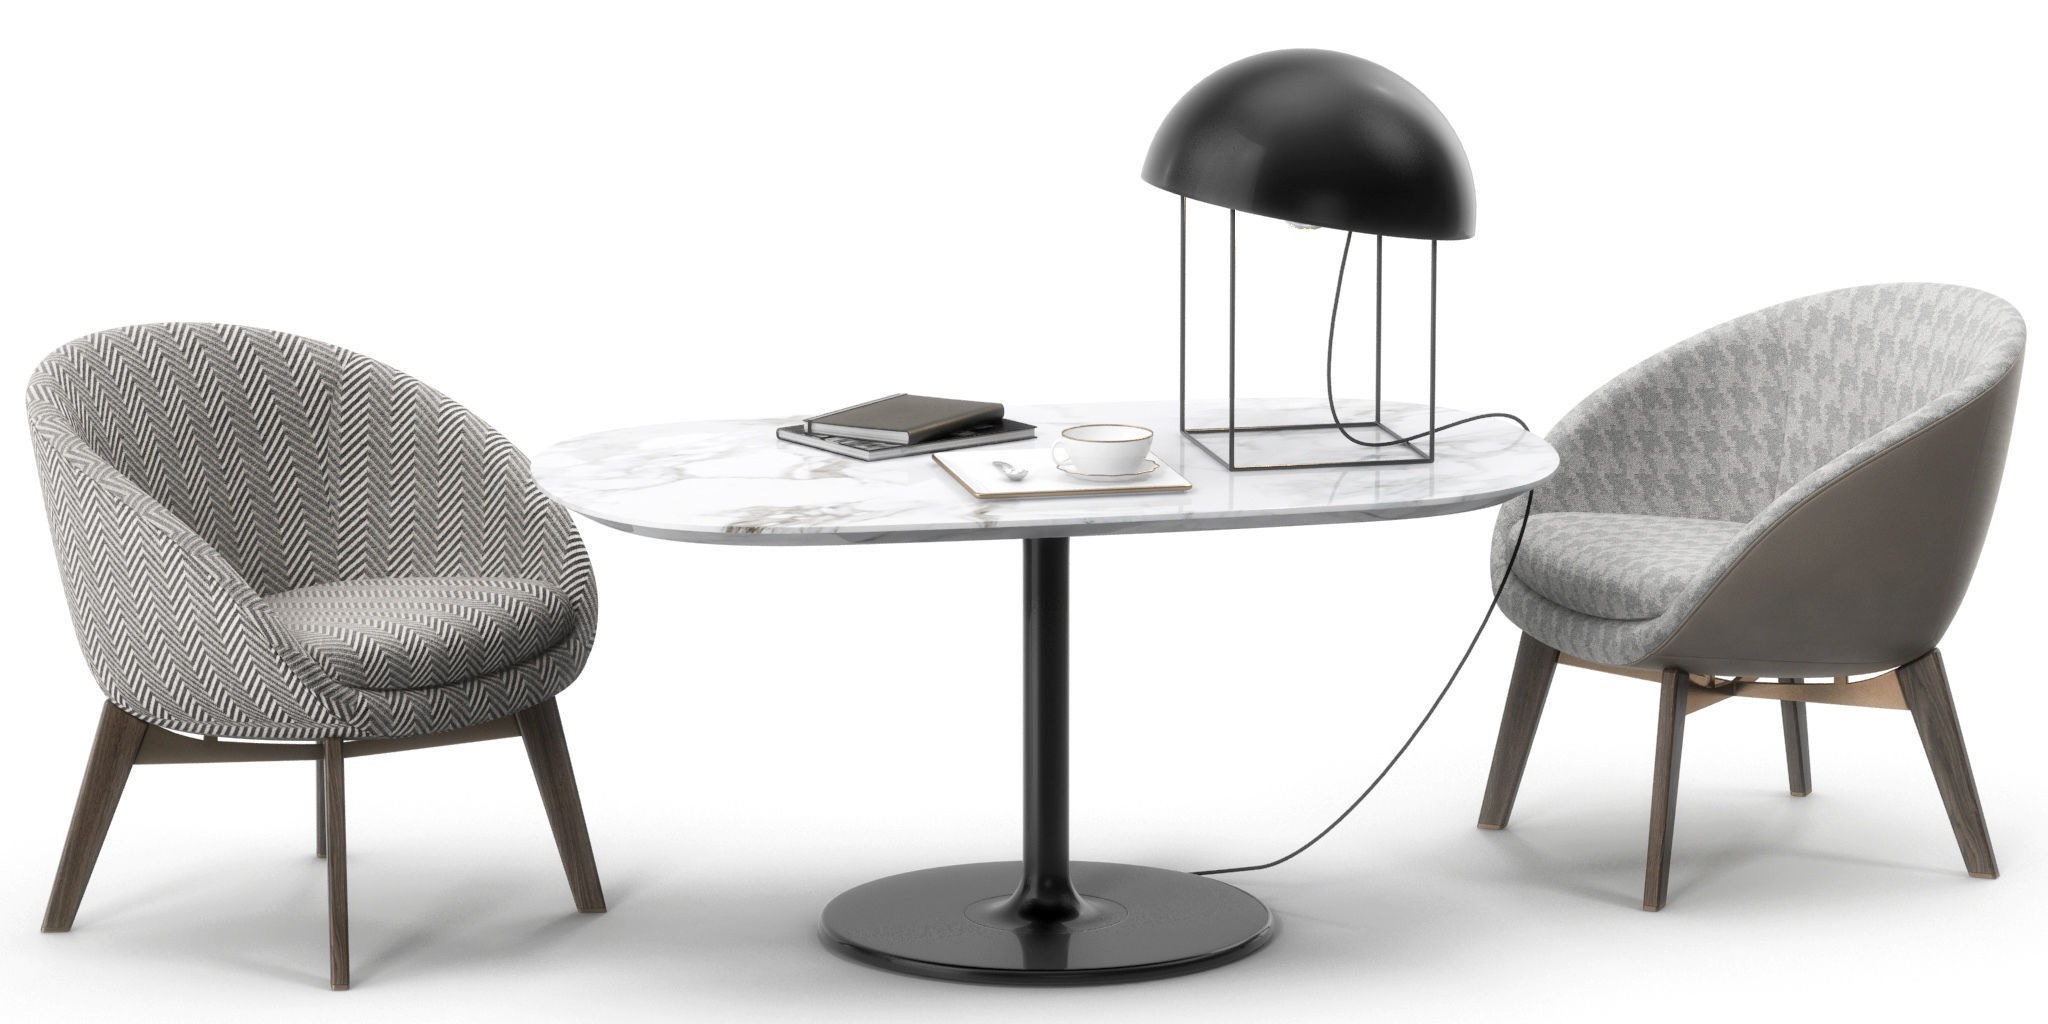 Minotti Russel Chair Oliver Table 3D Model 3D Model Max